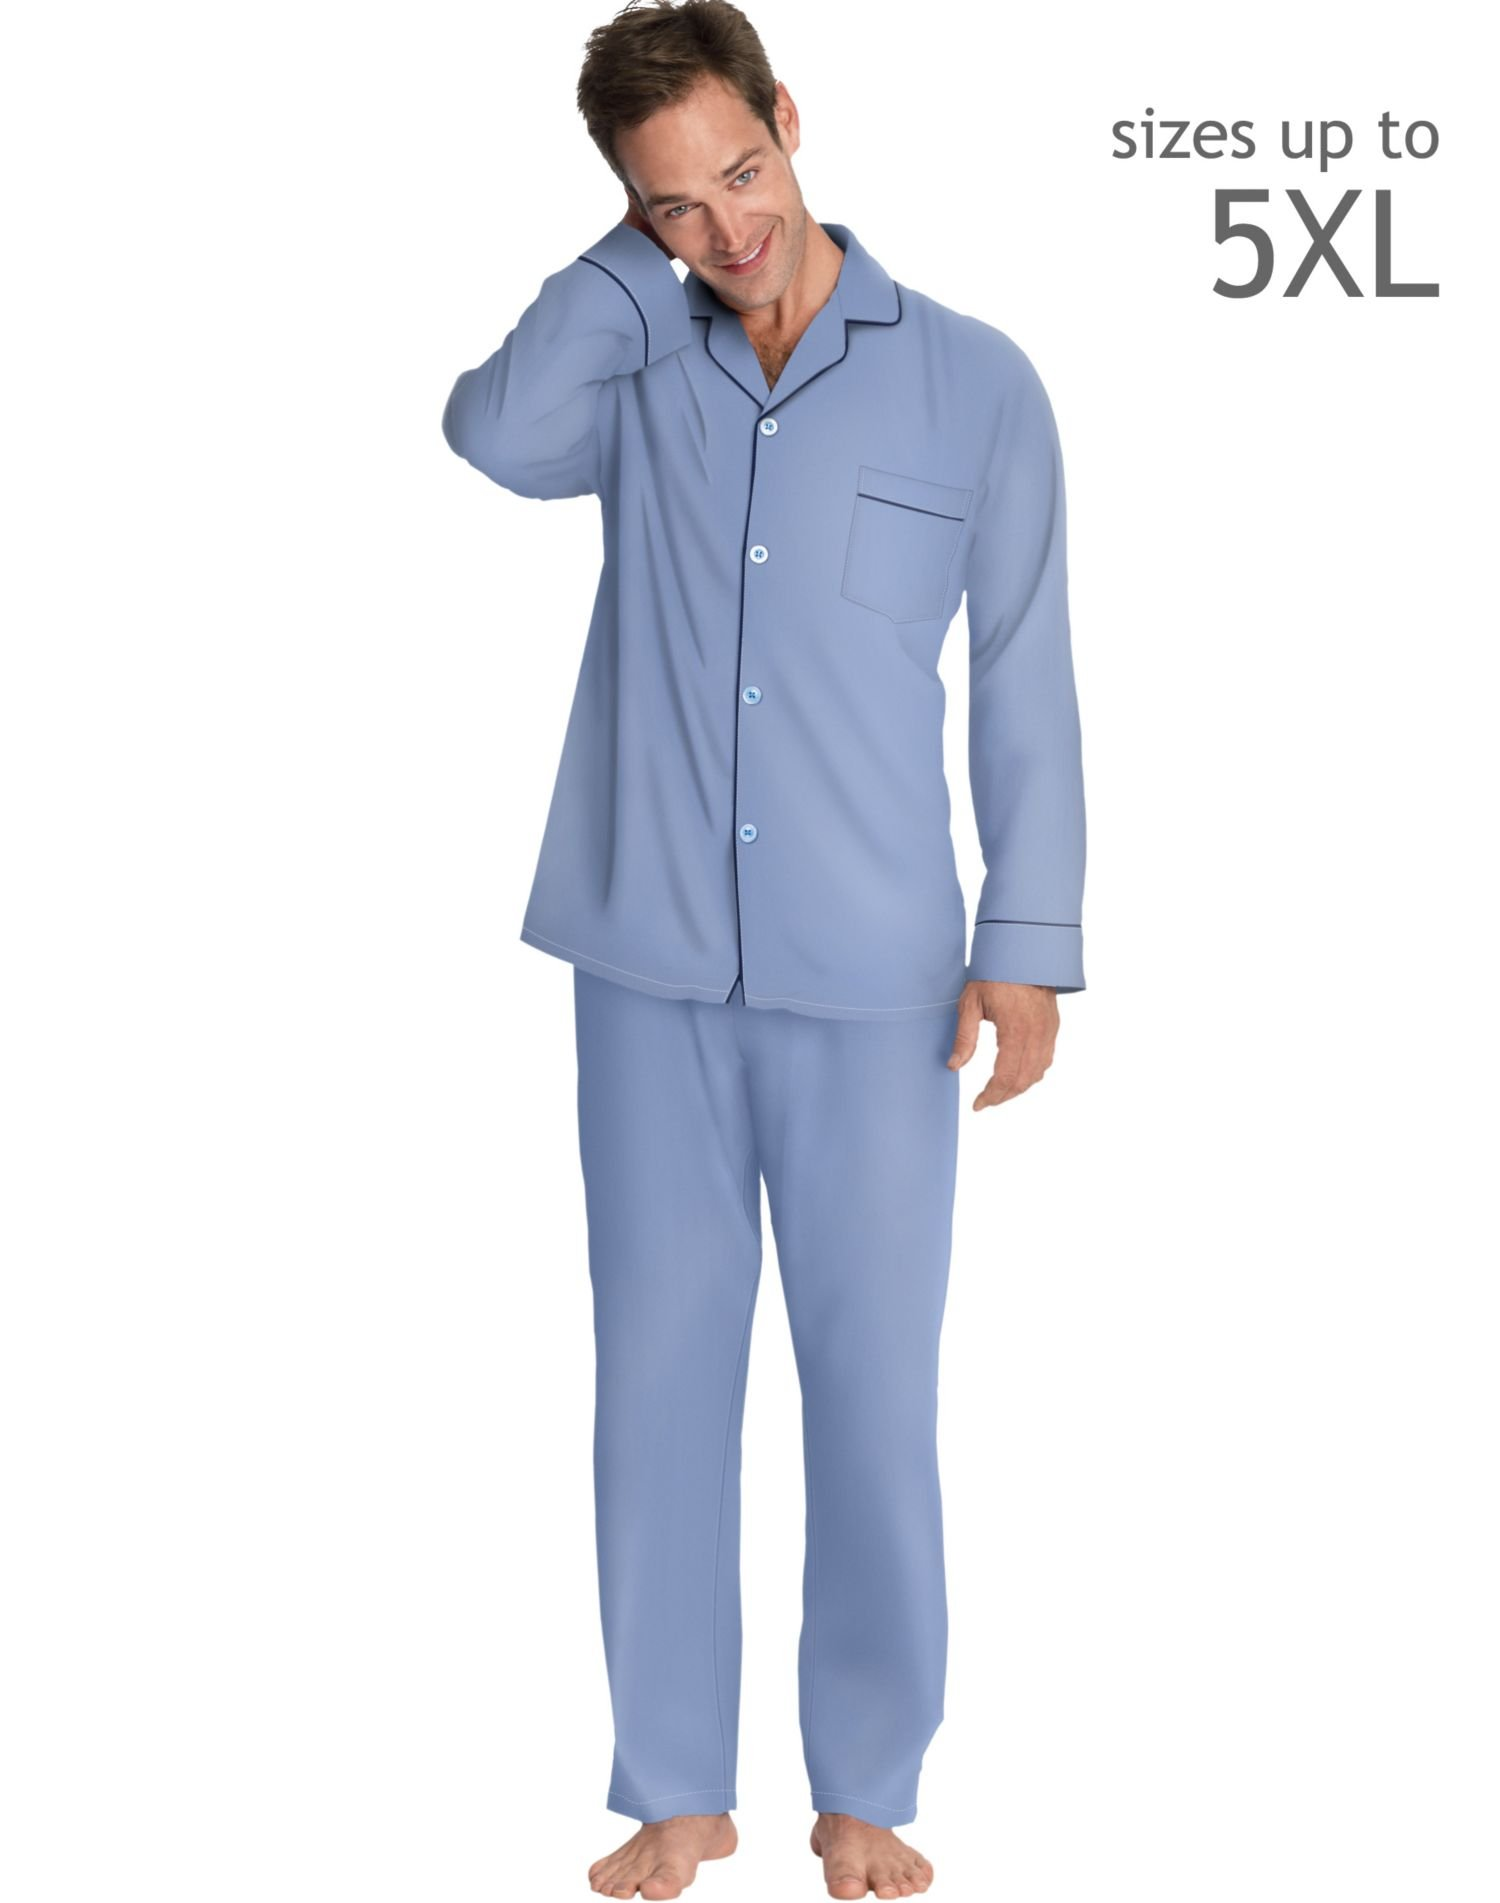 Hanes LSLLBCWM-LSLLBCWMB Mens Woven Pajamas Size Small, Medium Blue